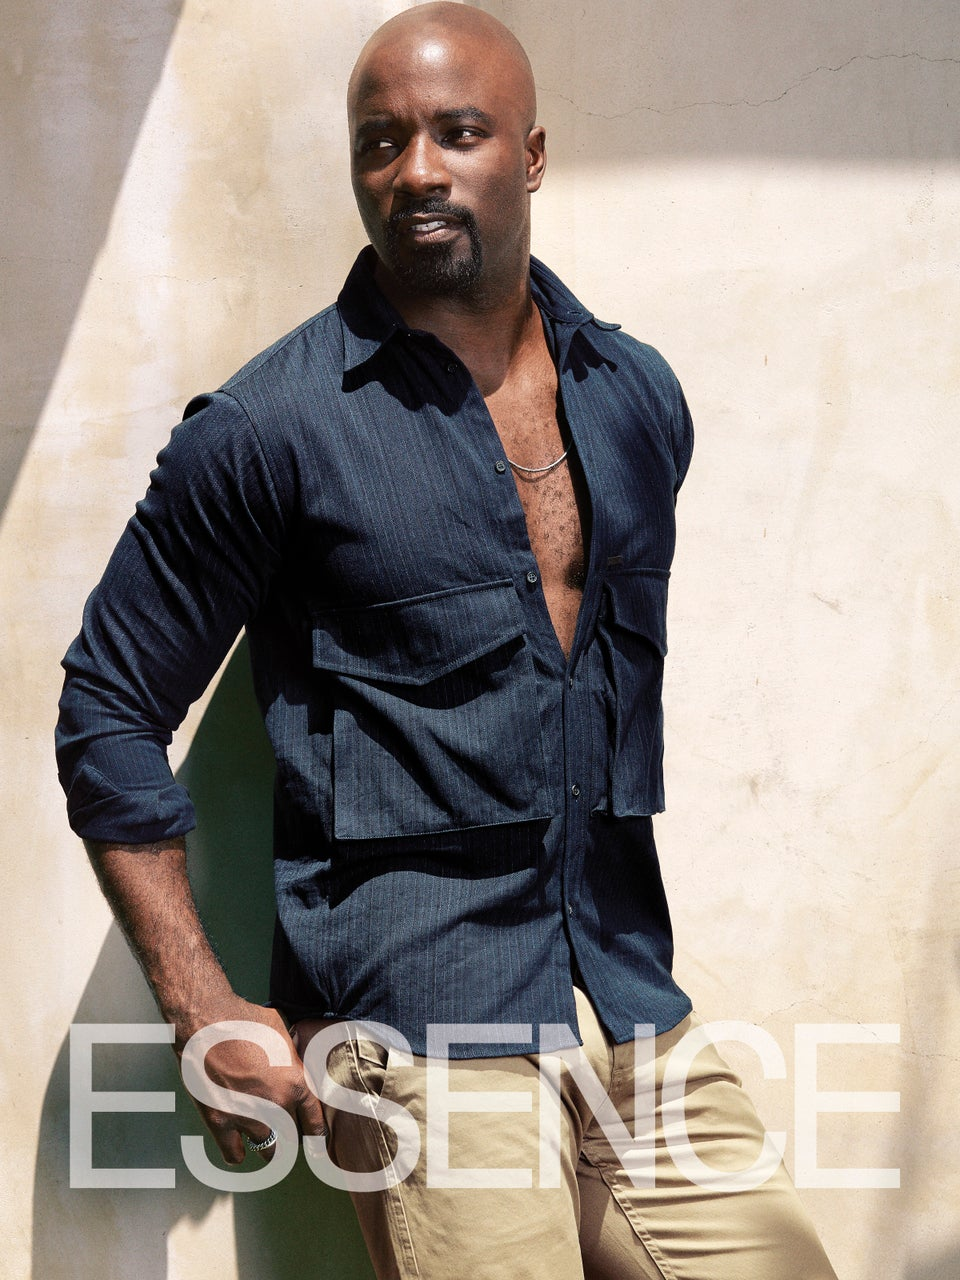 Here's Everything You Need To Know About 'Luke Cage' Leading Man Mike Colter